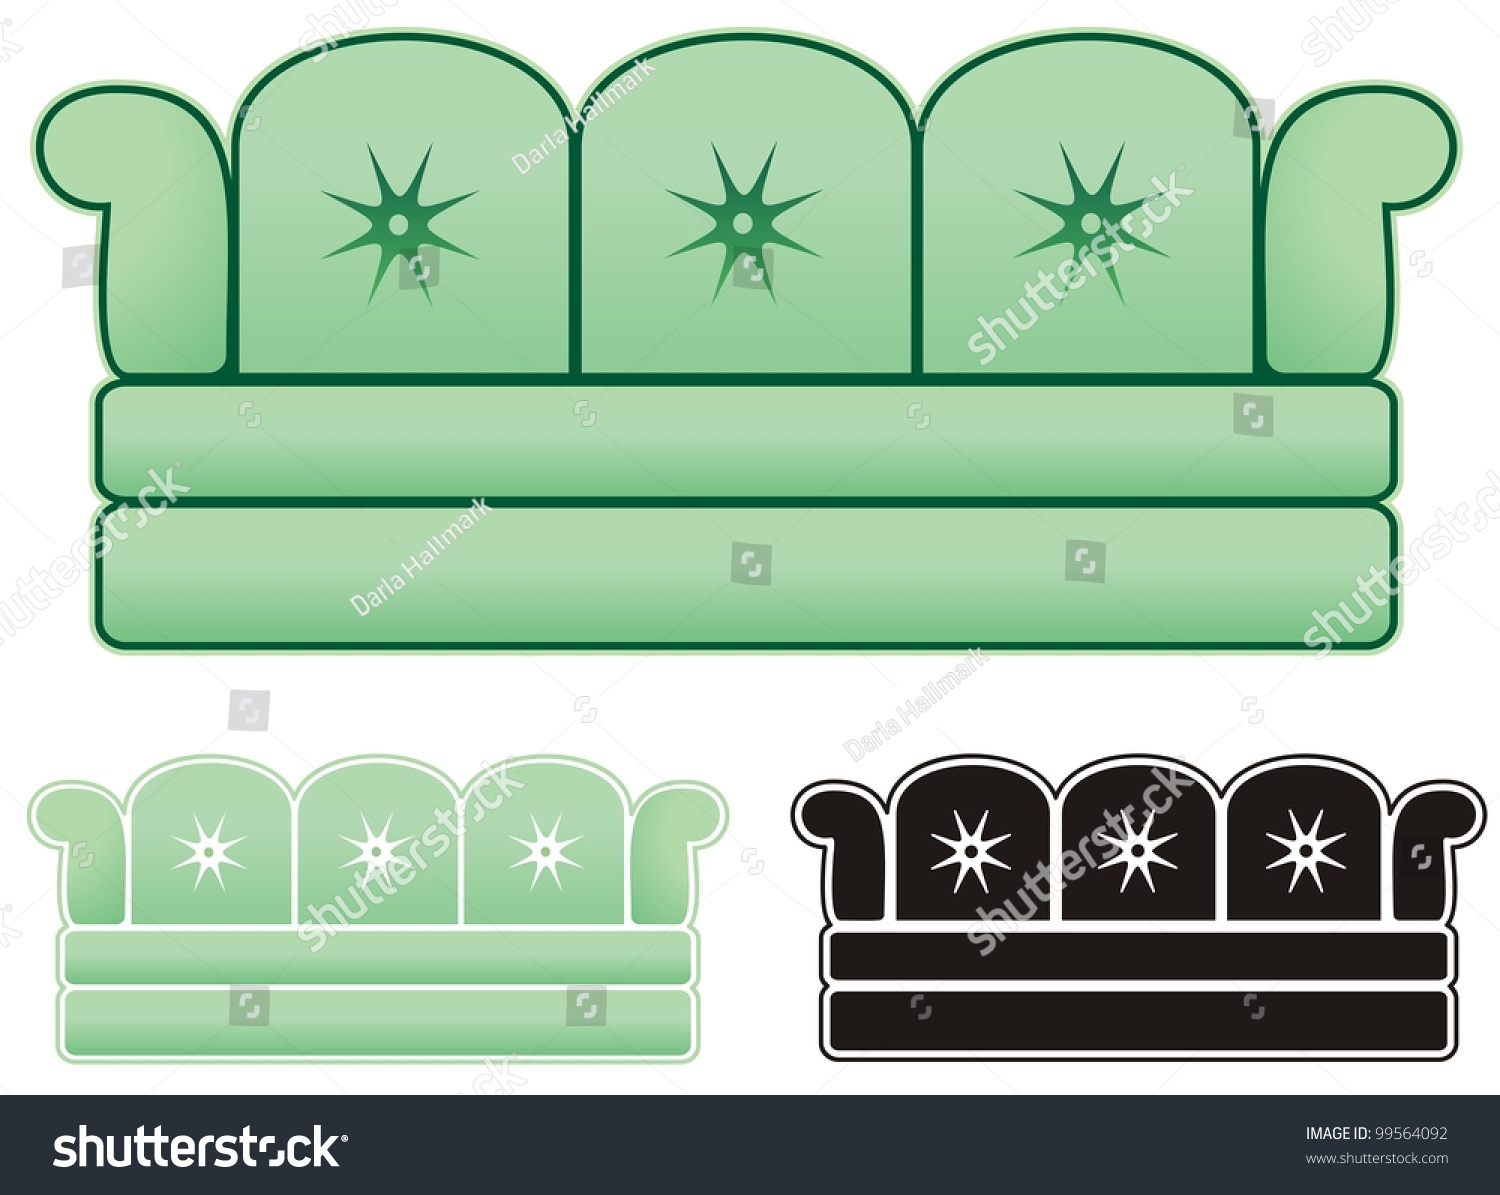 infamous ugly sofa great decorating business stock vector royalty rh shutterstock com Business Card Logo Small Business Clip Art